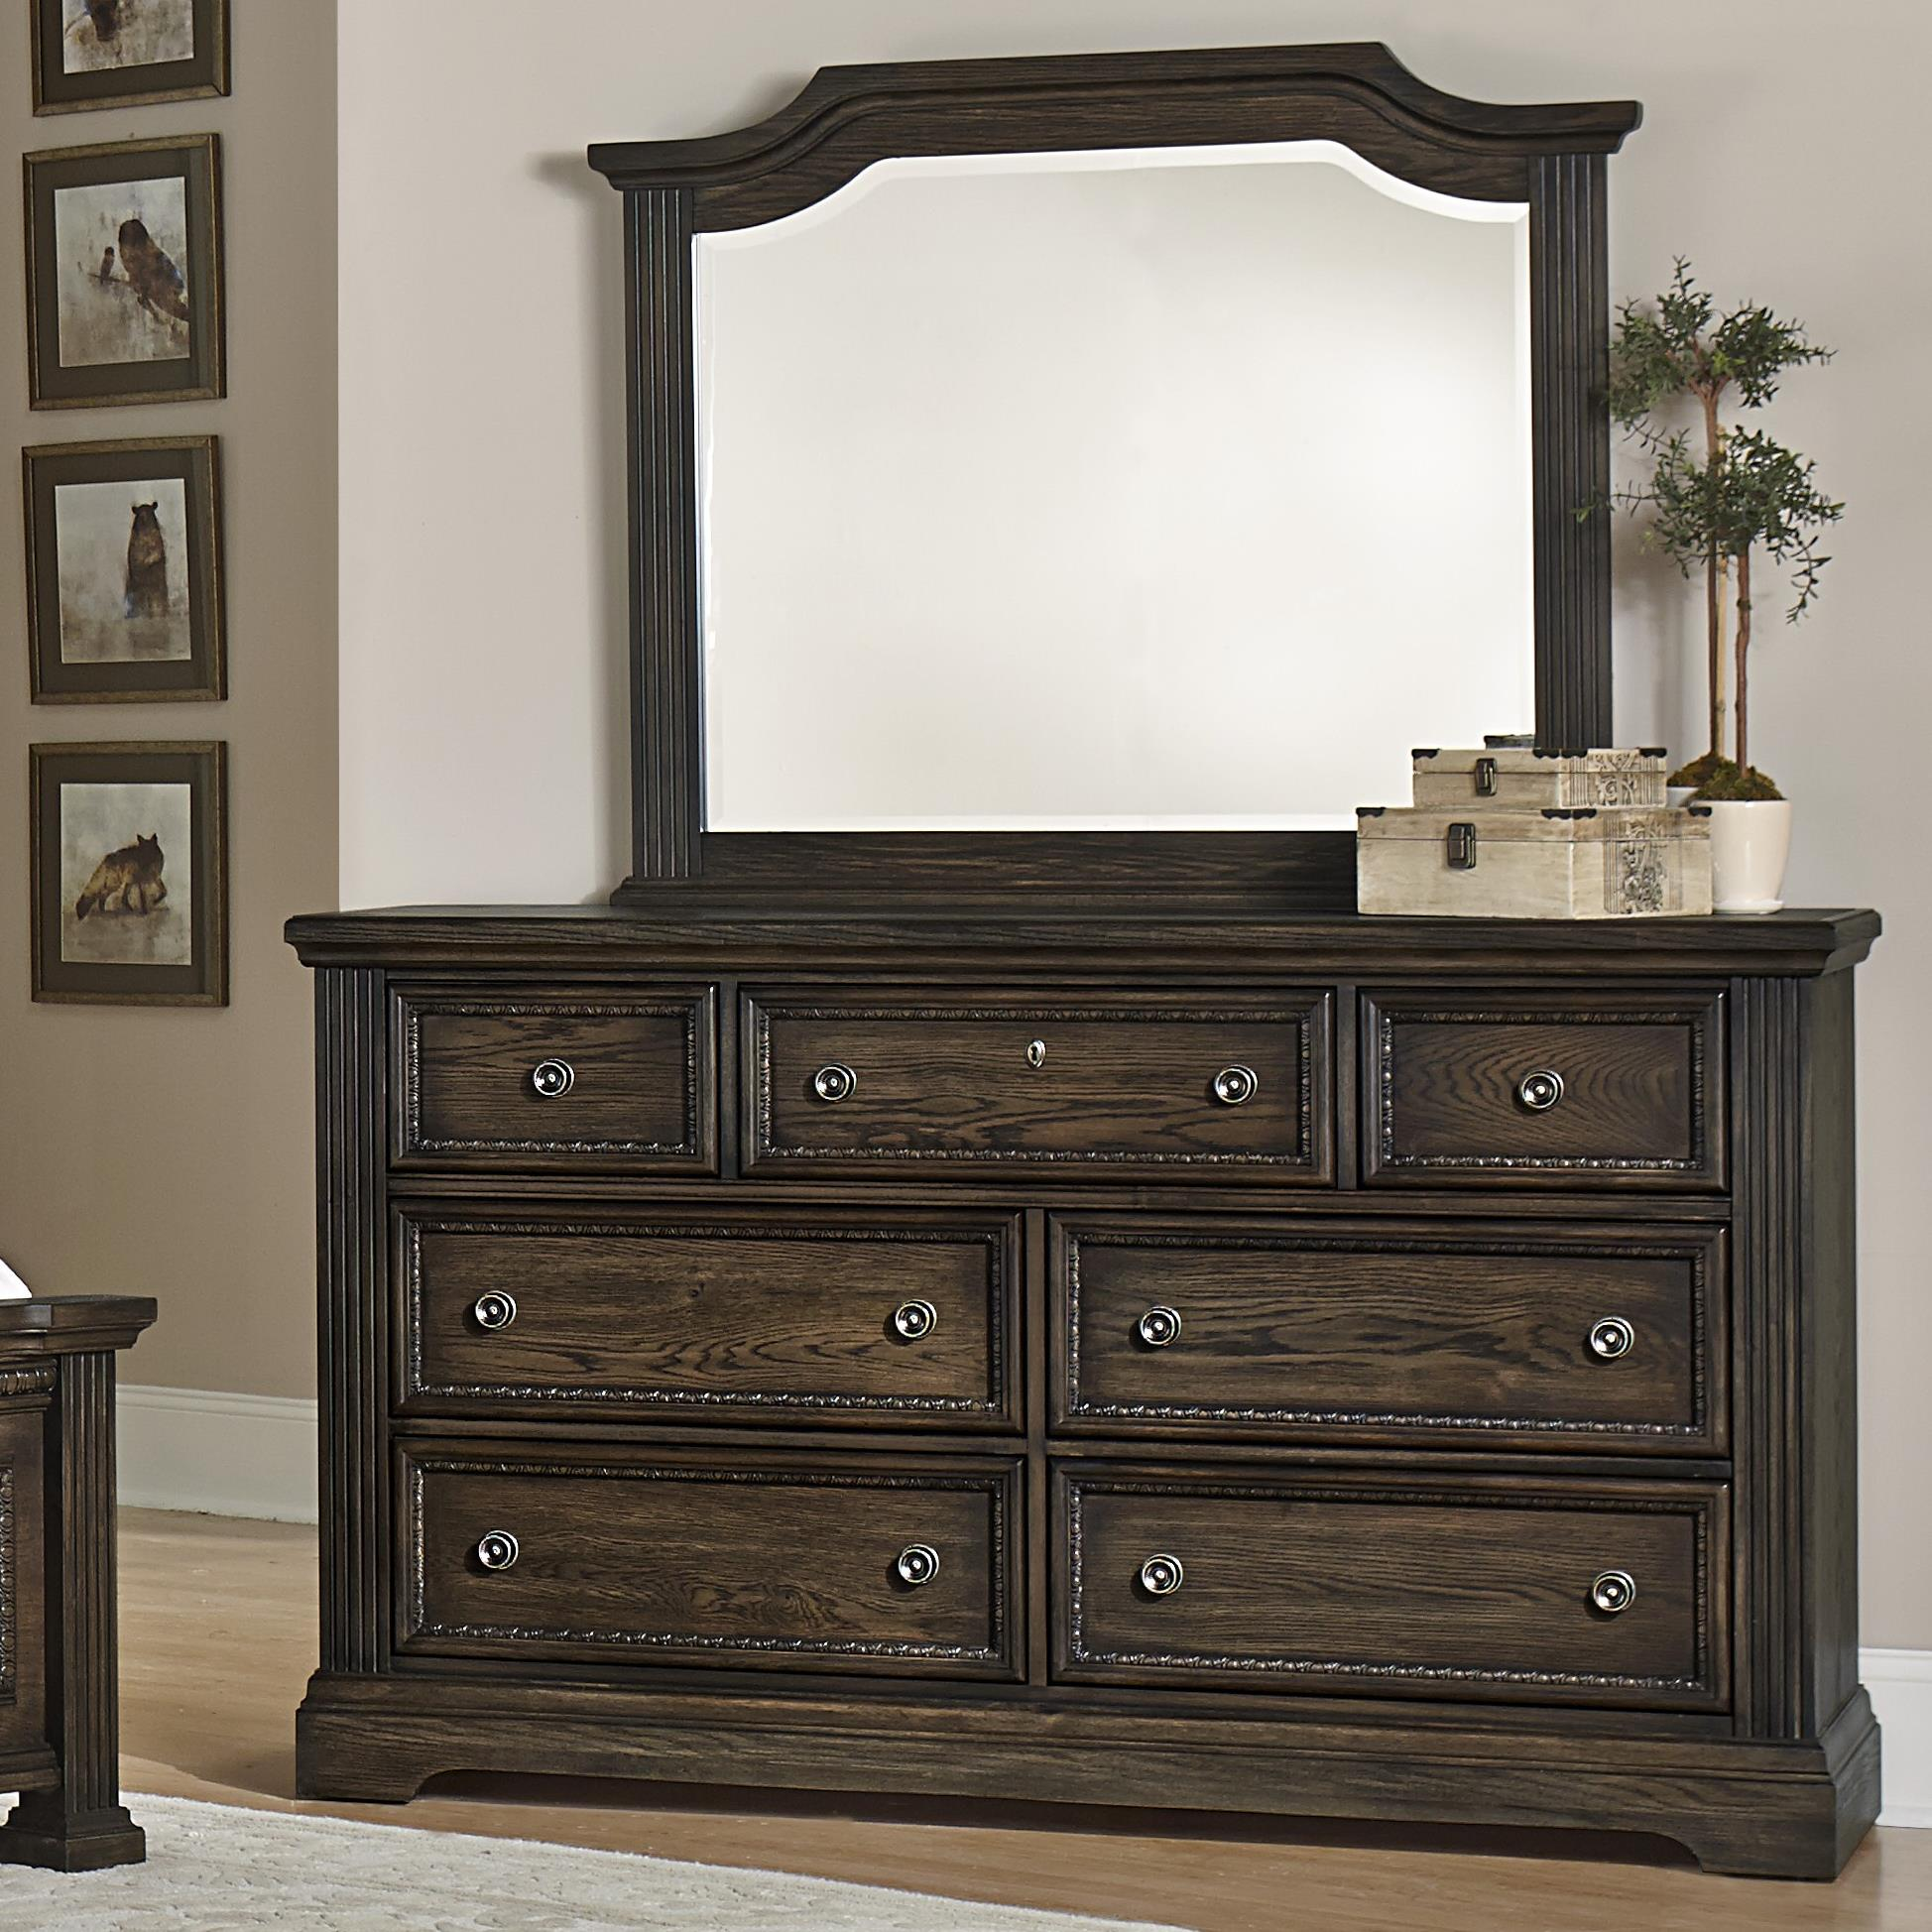 Vaughan Bassett Affinity Dresser & Arch Mirror - Item Number: 560-002+447